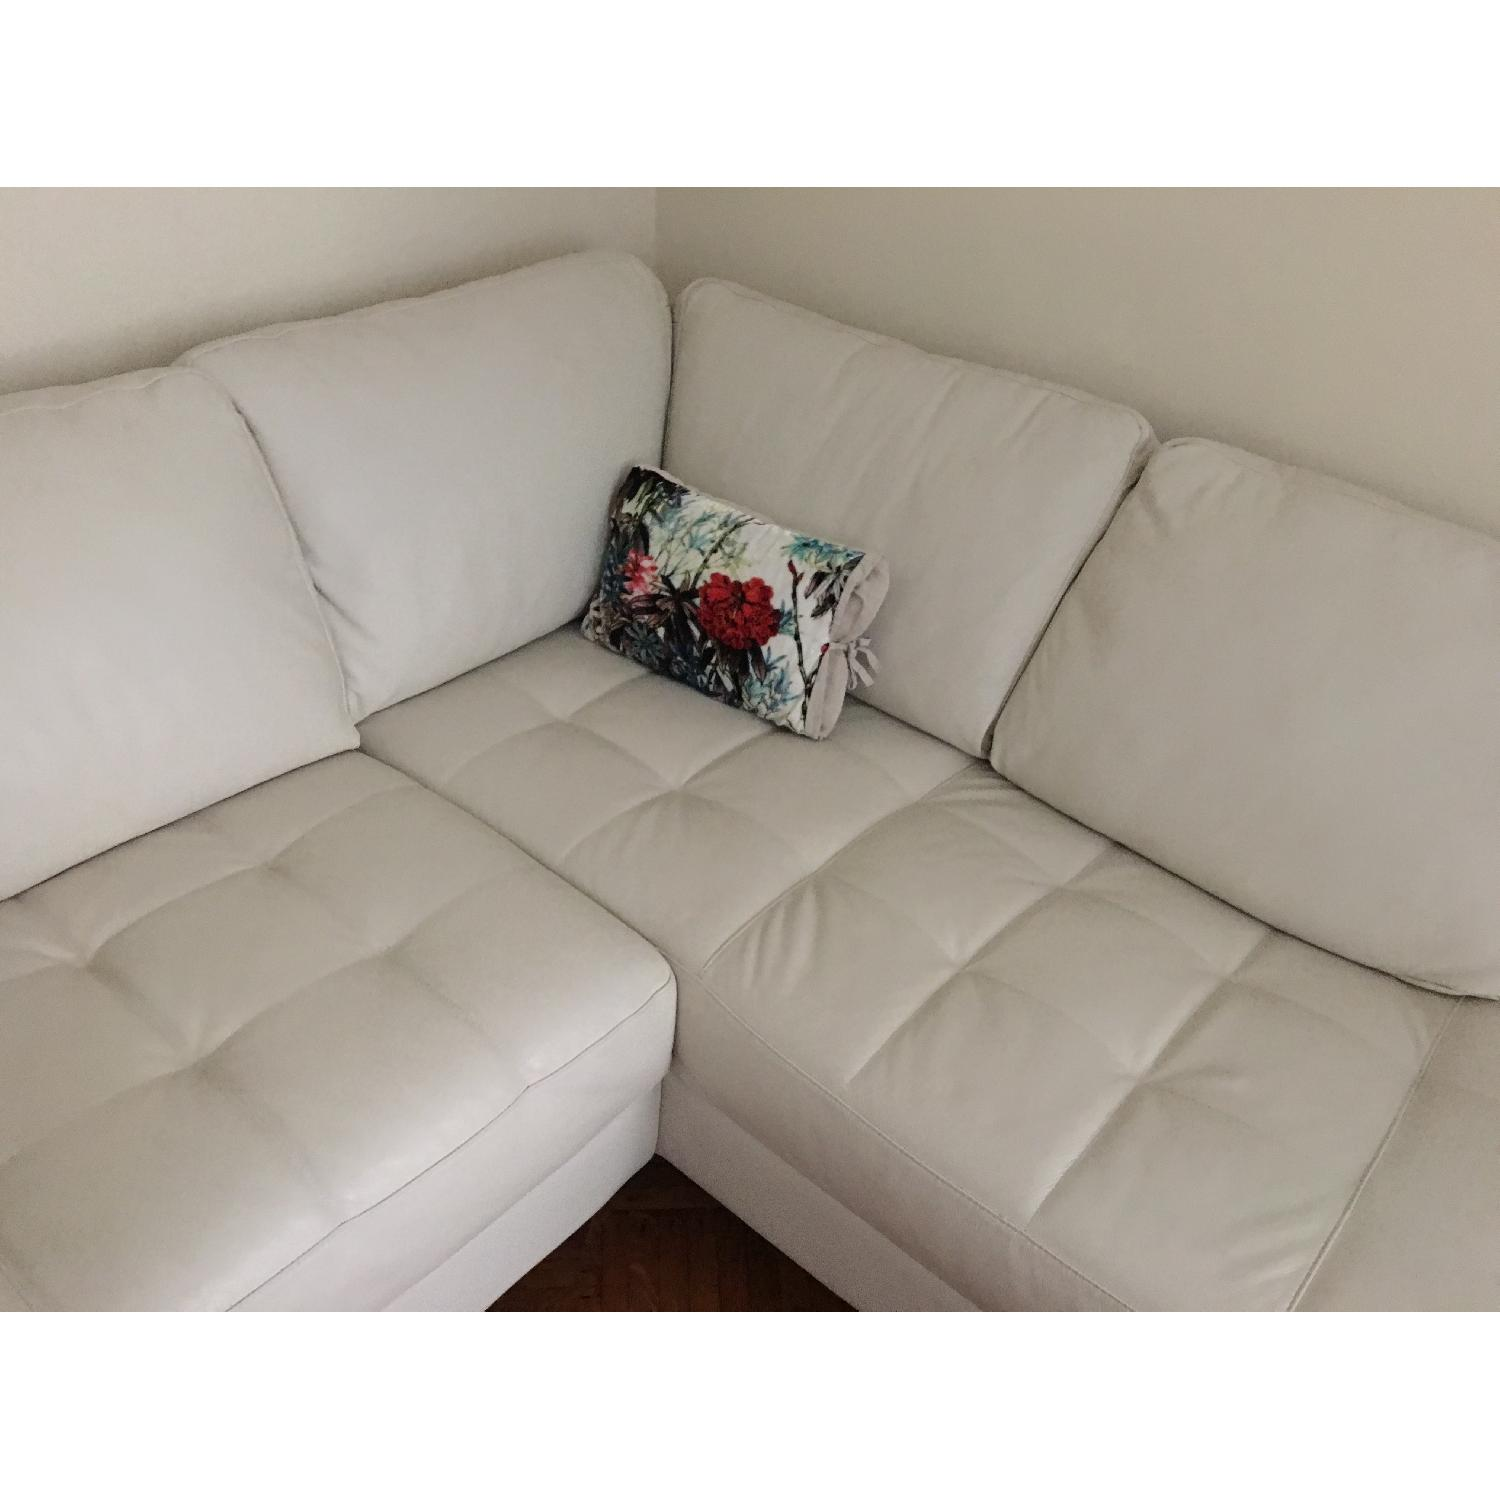 Macy's Italian Quilted Leather Sectional Sofa - image-5